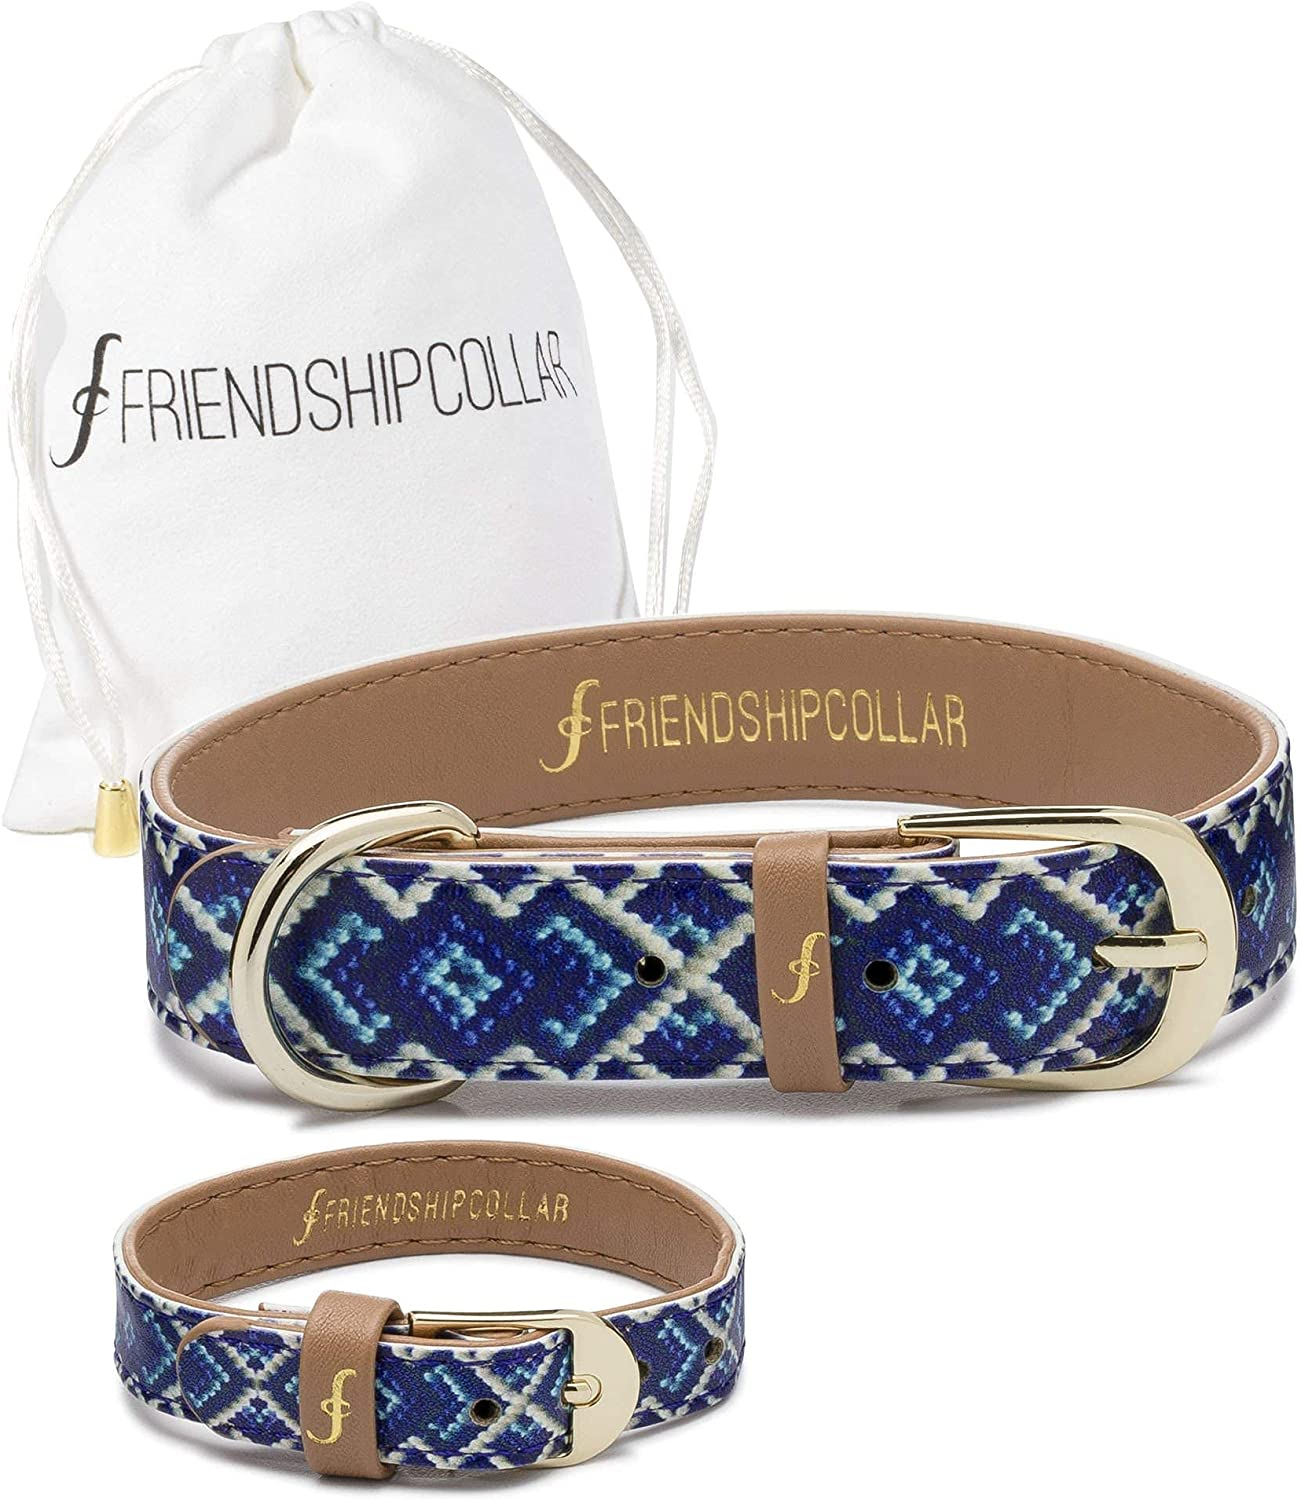 FriendshipCollar Dog or Cat Collar and T Set Bracelet Matching - Challenge the lowest price El Paso Mall